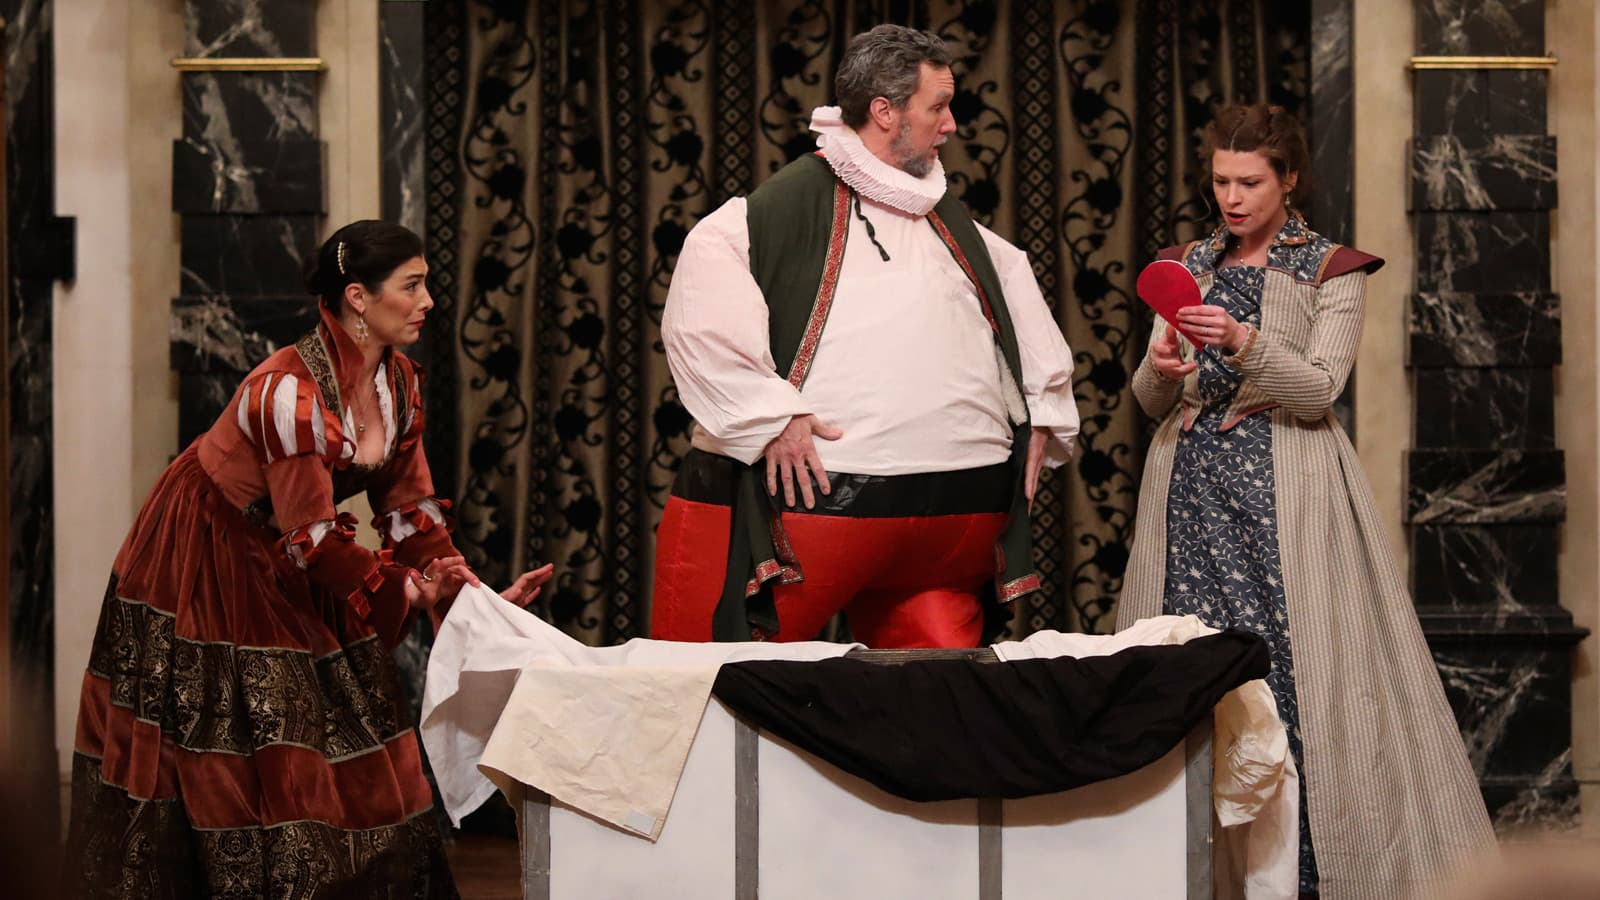 ASC Winter Season - The Merry Wives of Windsor